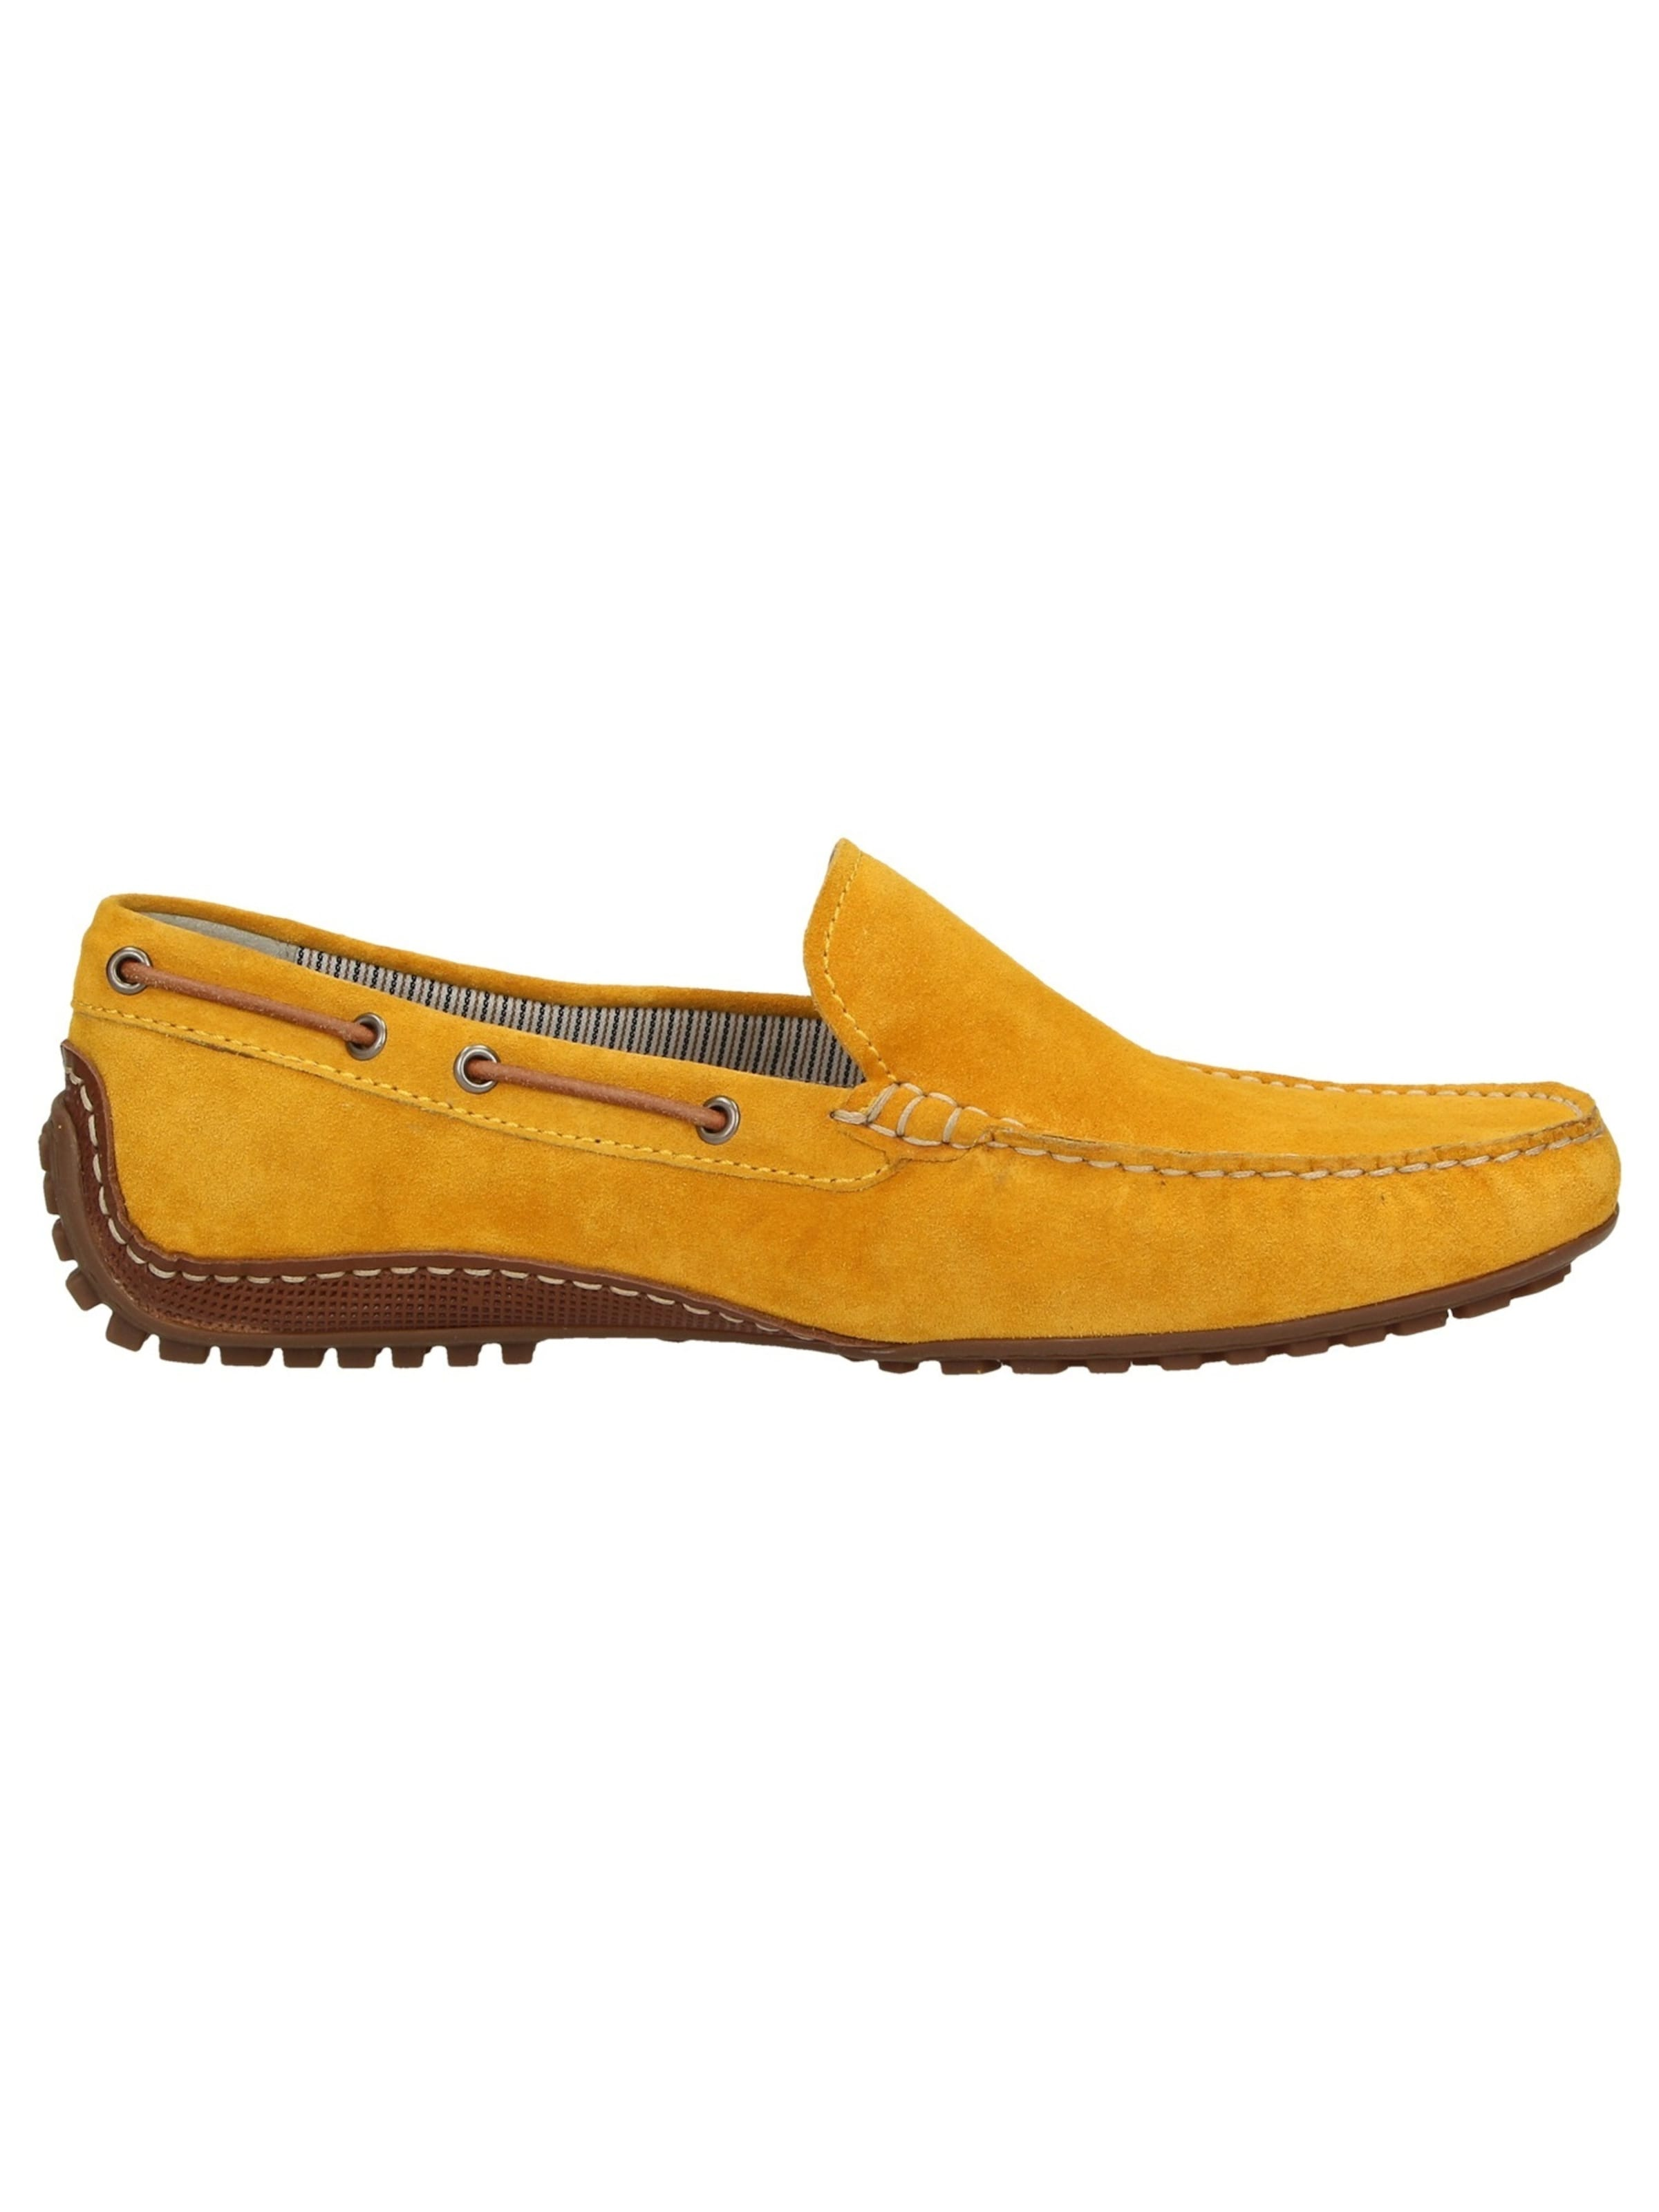 'callimo' Slipper Safran Sioux In Sioux Slipper MqSUVLzpG